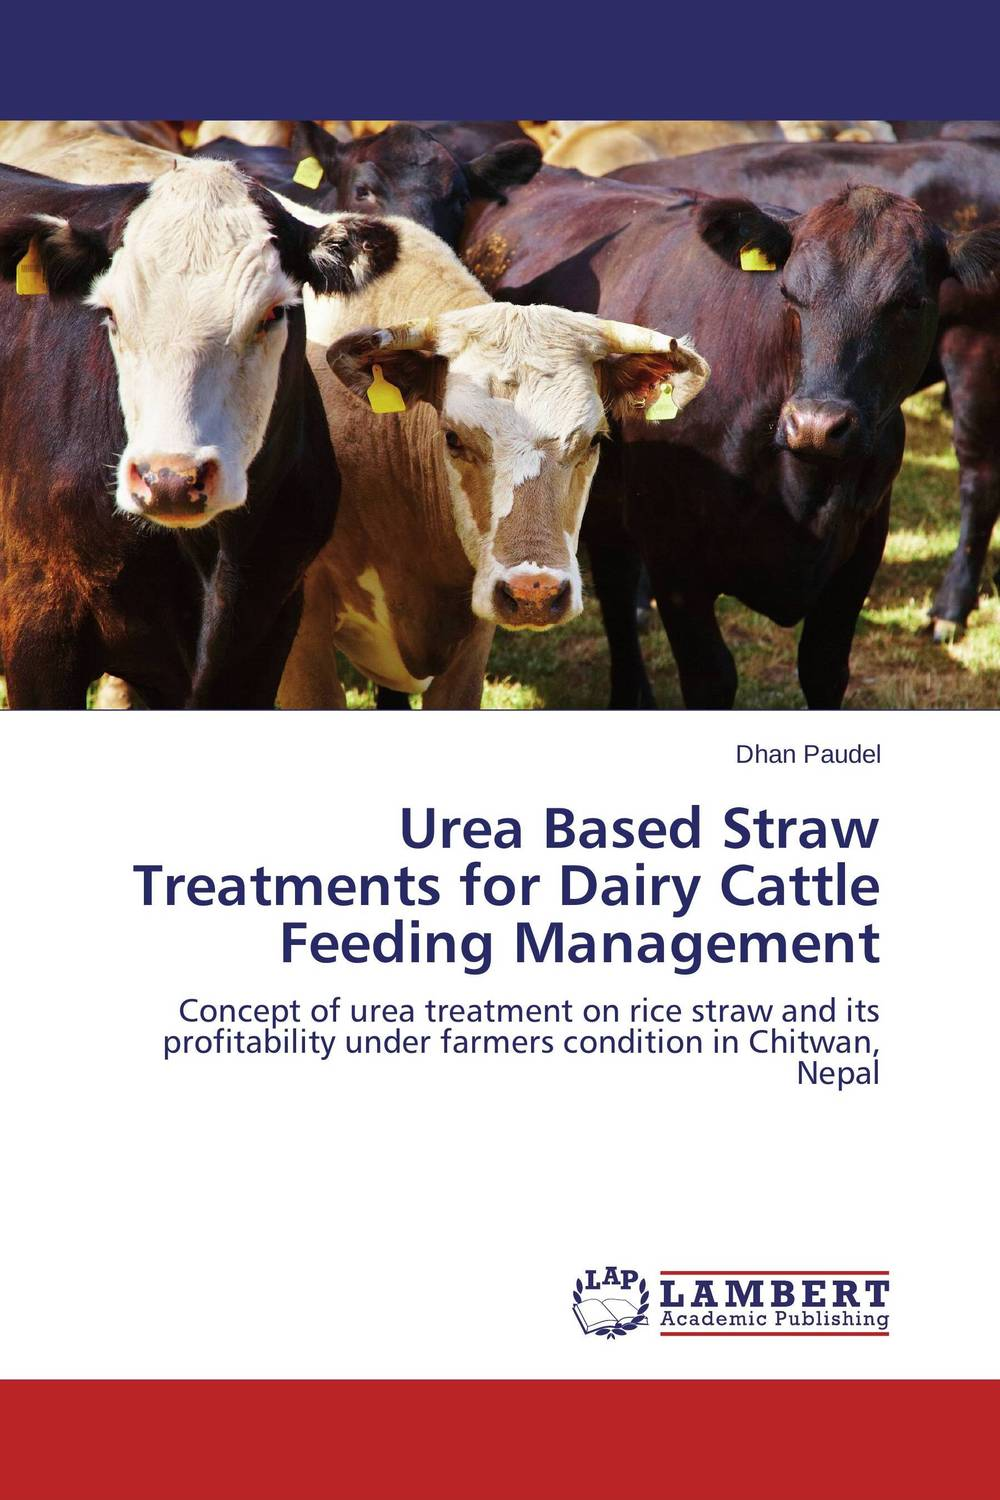 Urea Based Straw Treatments for Dairy Cattle Feeding Management current fertility status in cattle of mini dairy farms